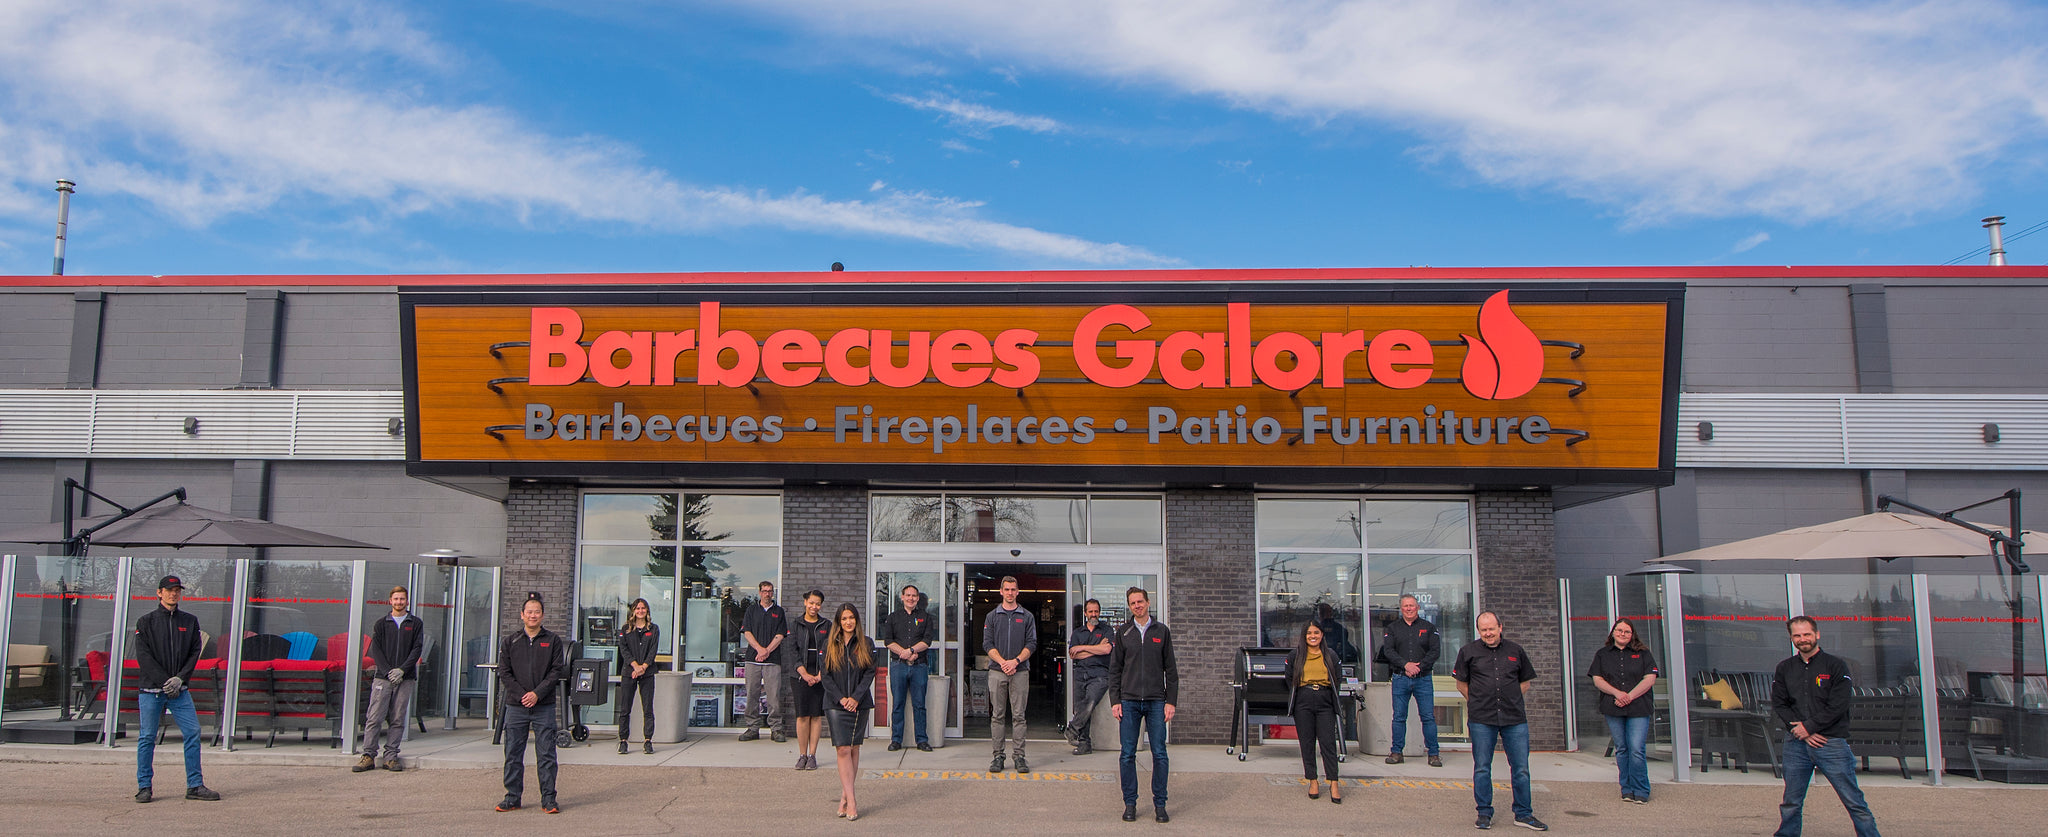 Barbecues Galore has two locations in Calgary, Alberta and three big showrooms across Ontario in Burlington, Etobicoke and Oakville.